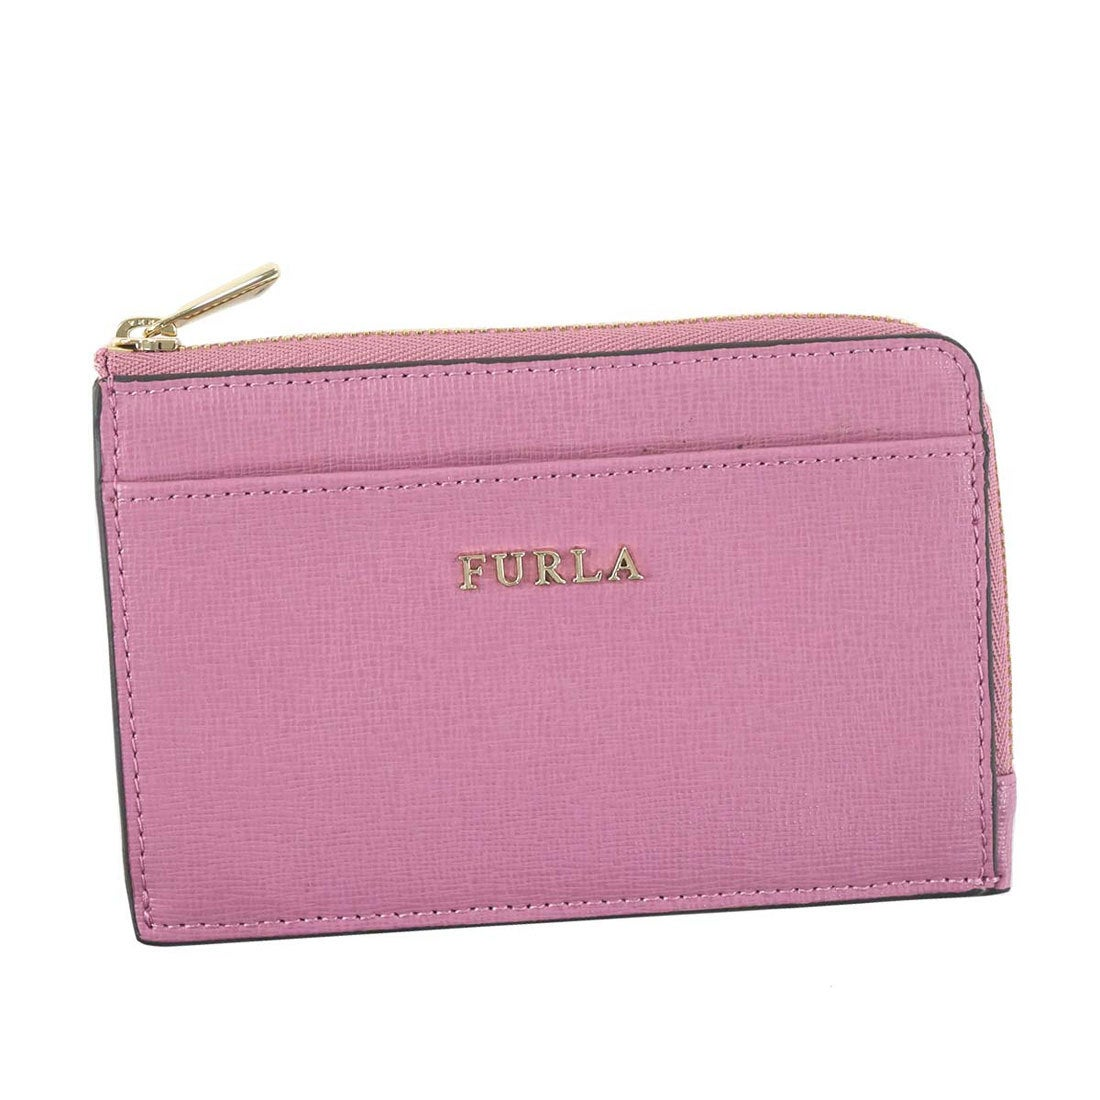 b8d31e0fa759 フルラ FURLA BABYLON M CREDIT CARD CASE (AZALEA ...